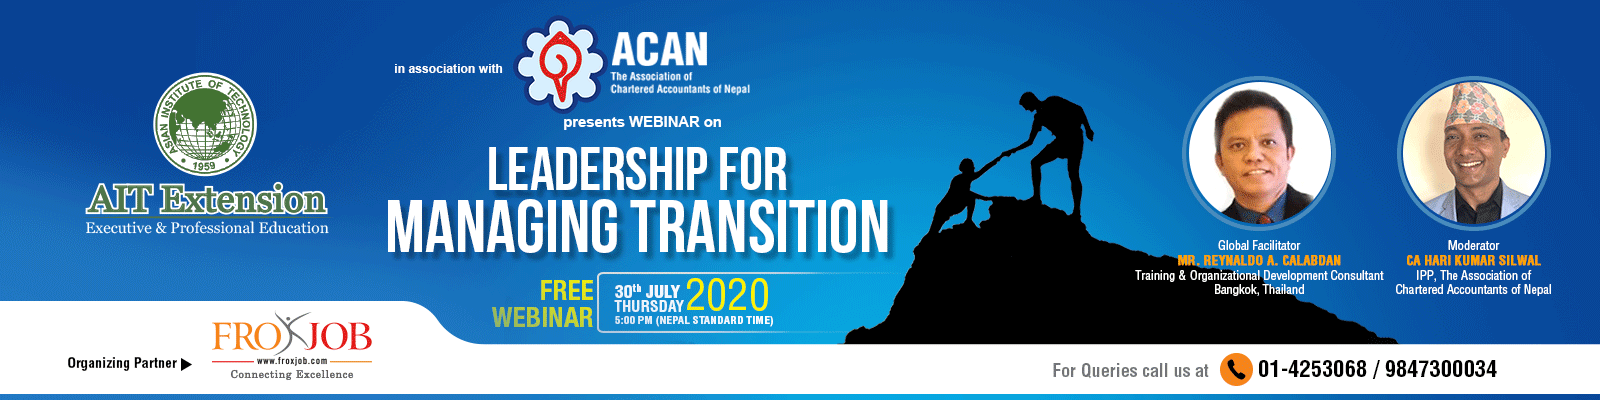 "Webinar on ""Leadership for Managing Transition"""